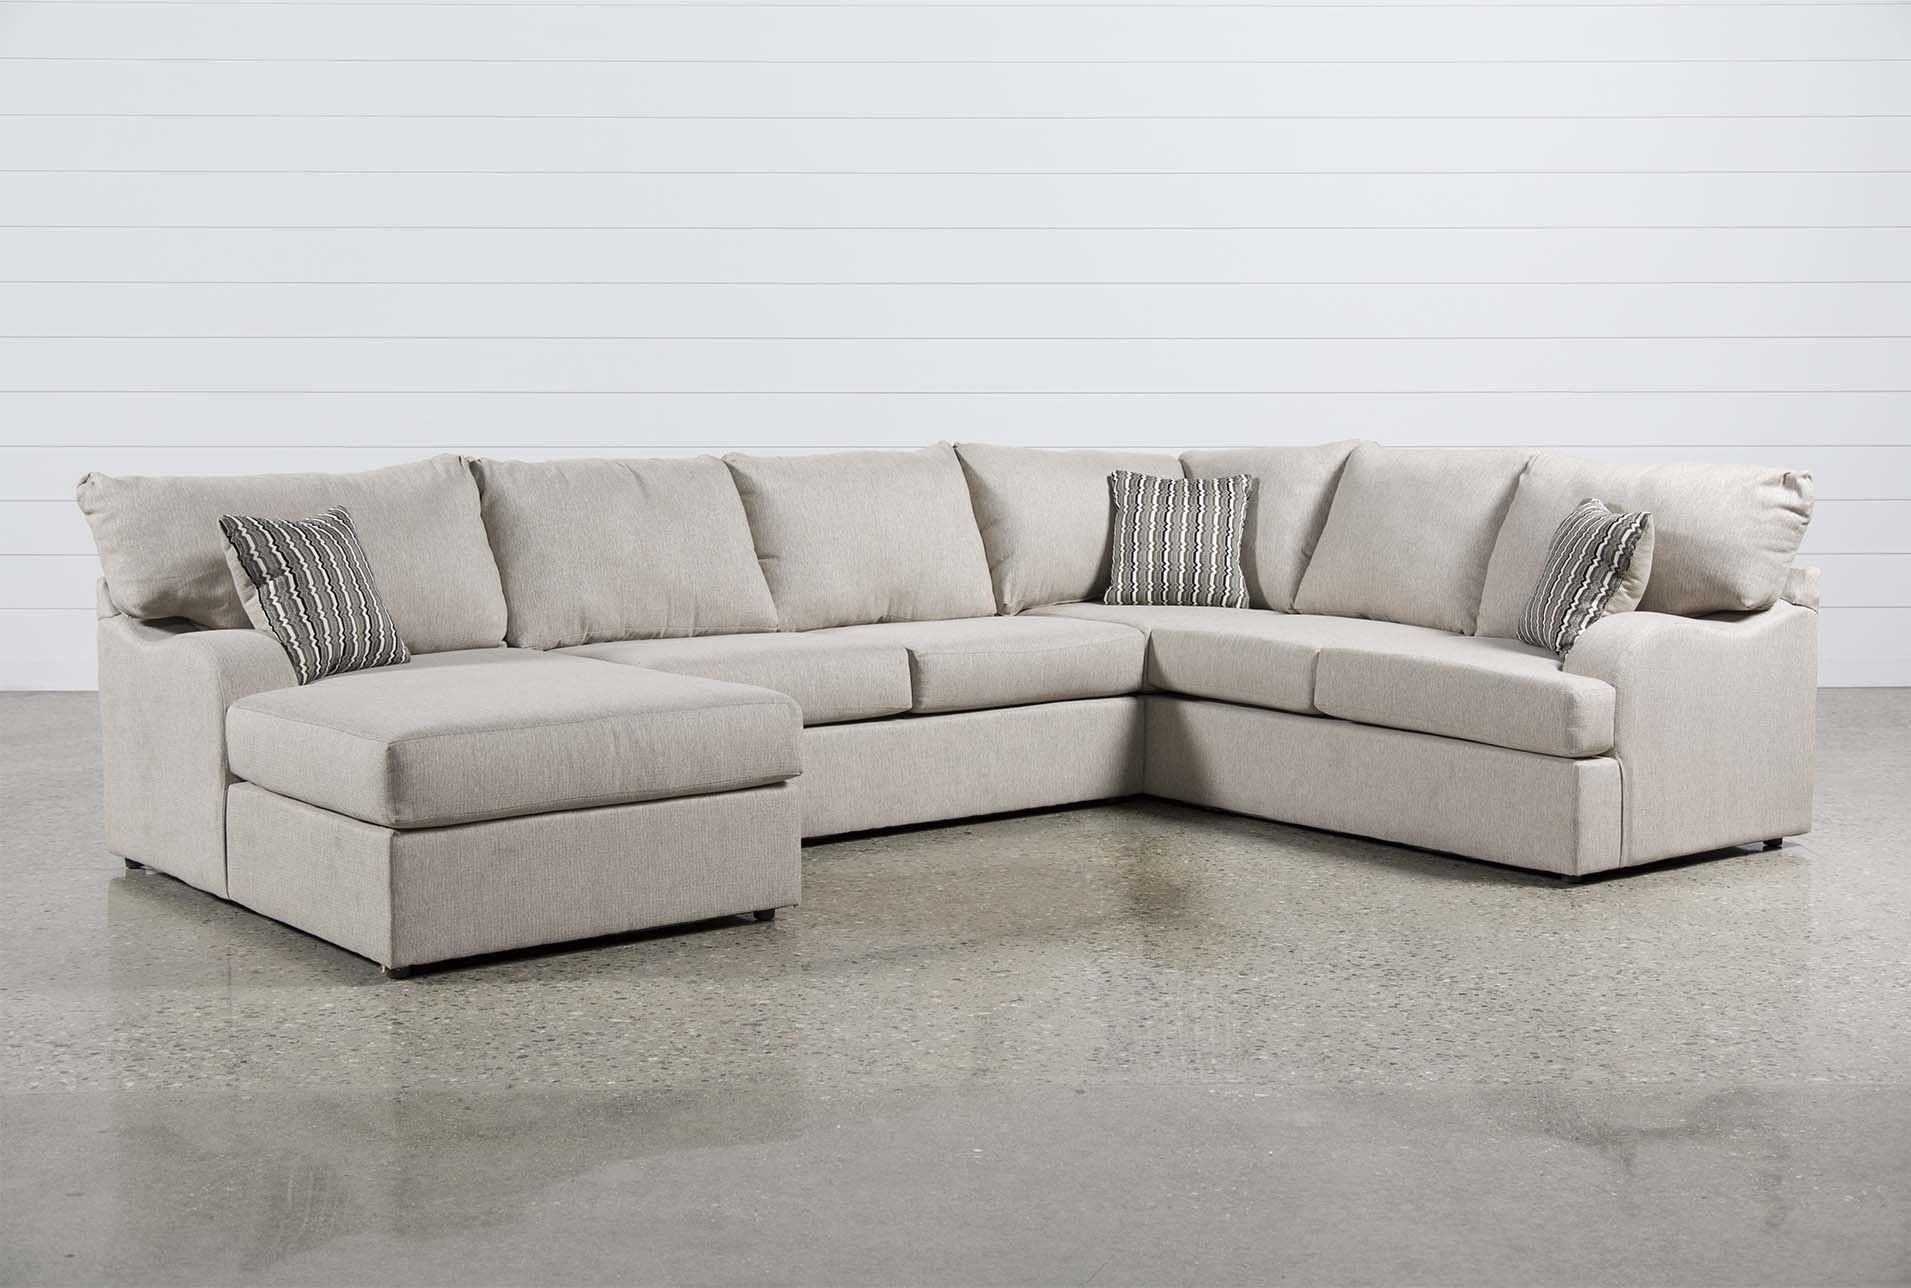 Rowe 7860 Addison Sectional available at Hickory Park Furniture Galleries | Den Ideas | Pinterest | Upholstery : meyer sectional sofa - Sectionals, Sofas & Couches